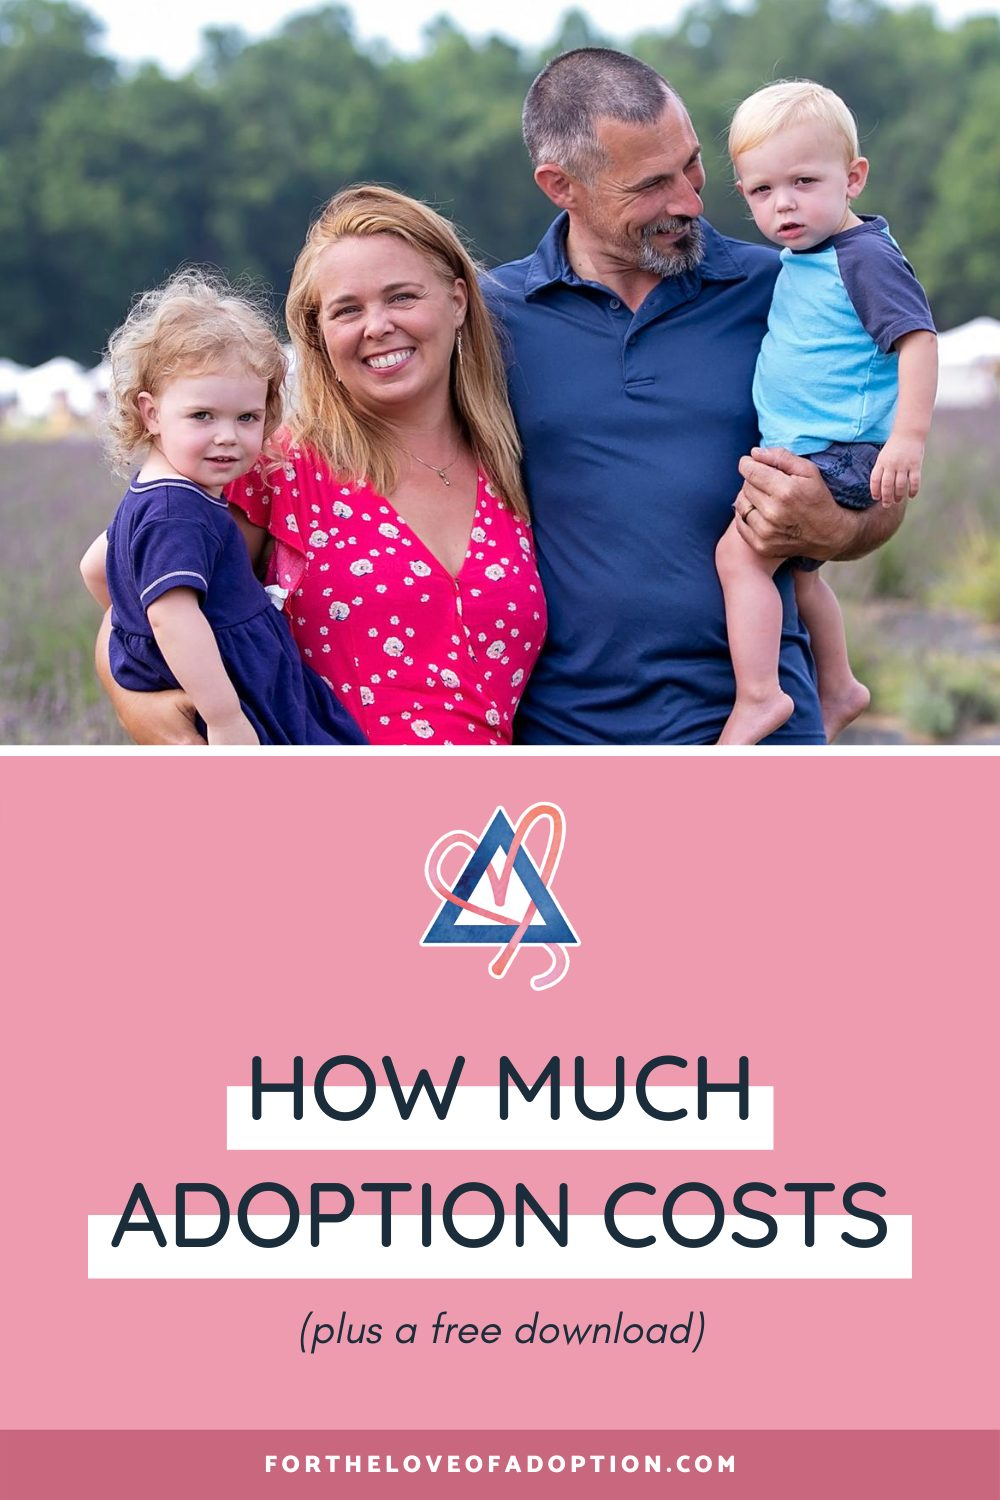 5 Types of Adoption and Their Associated Costs